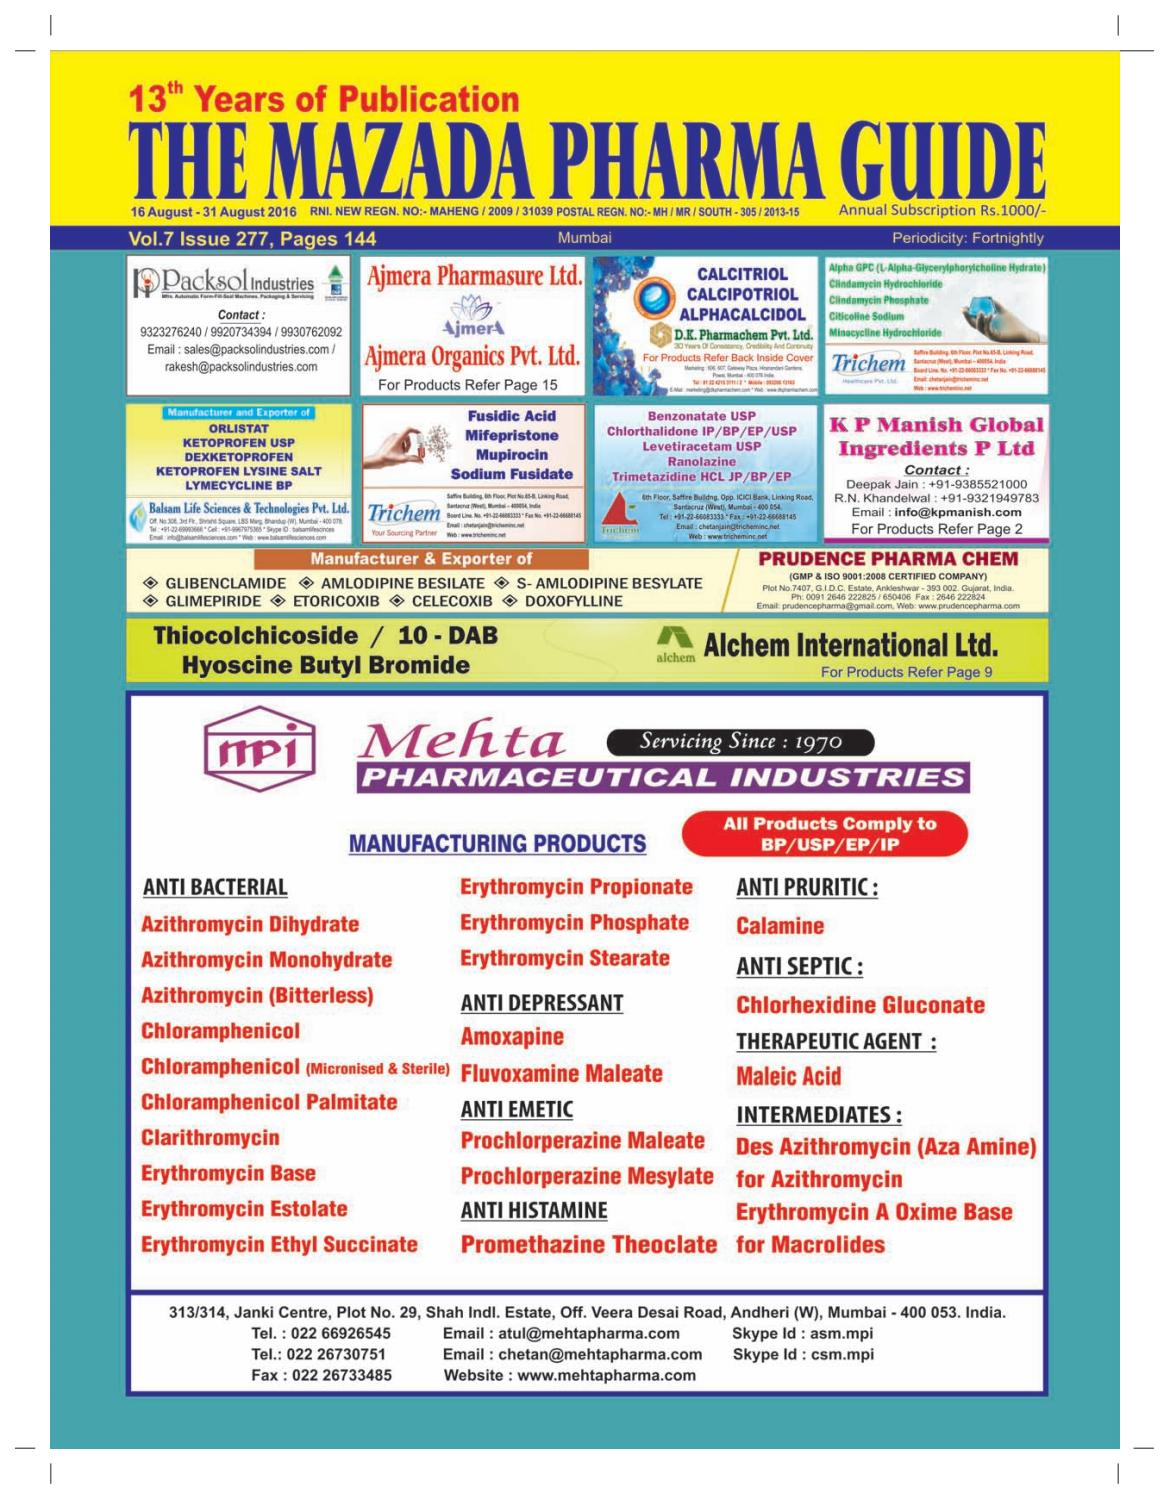 The Mazada Pharma Guide 16th to 31st August 2016 by The Mazada Pharma Guide  - issuu